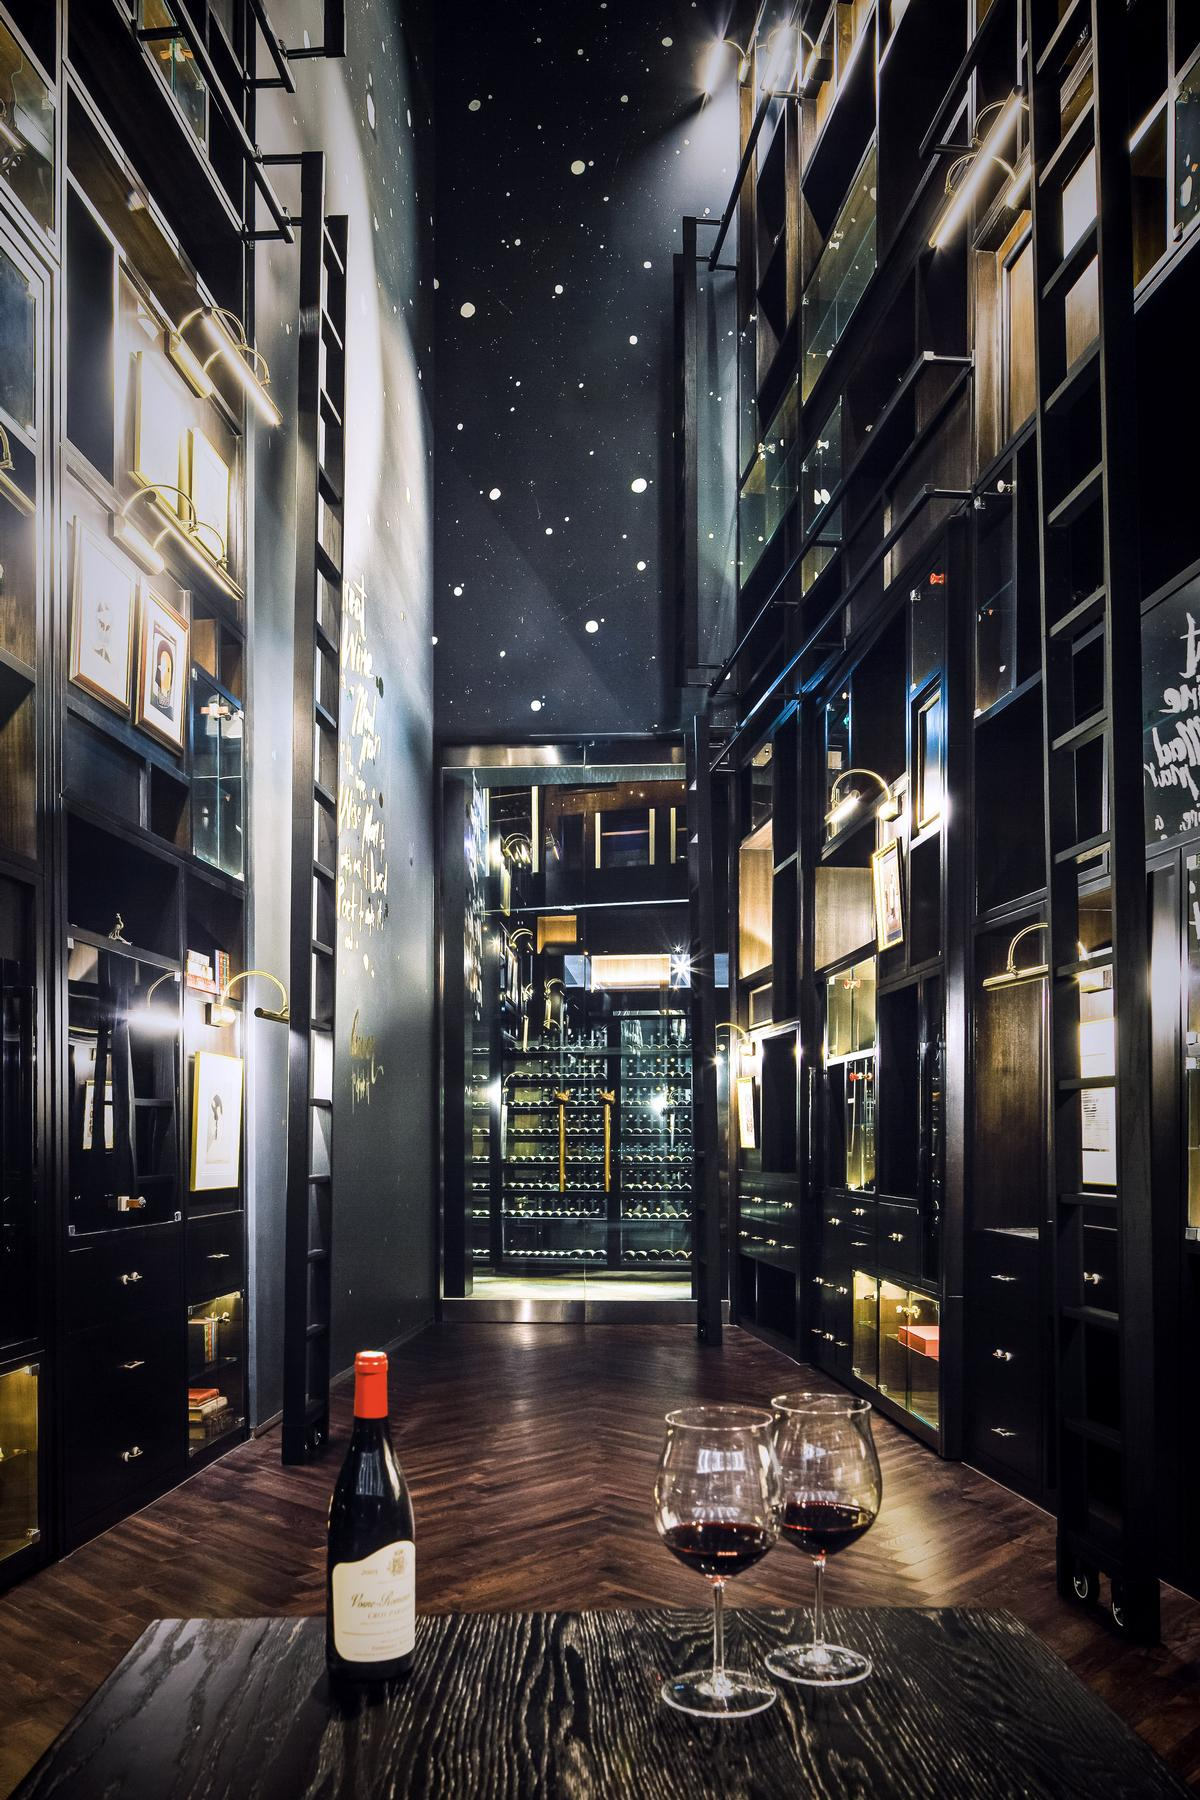 At the heart of the restaurant is a 16m high wine wall, described by the designer as 'a marvel to behold'